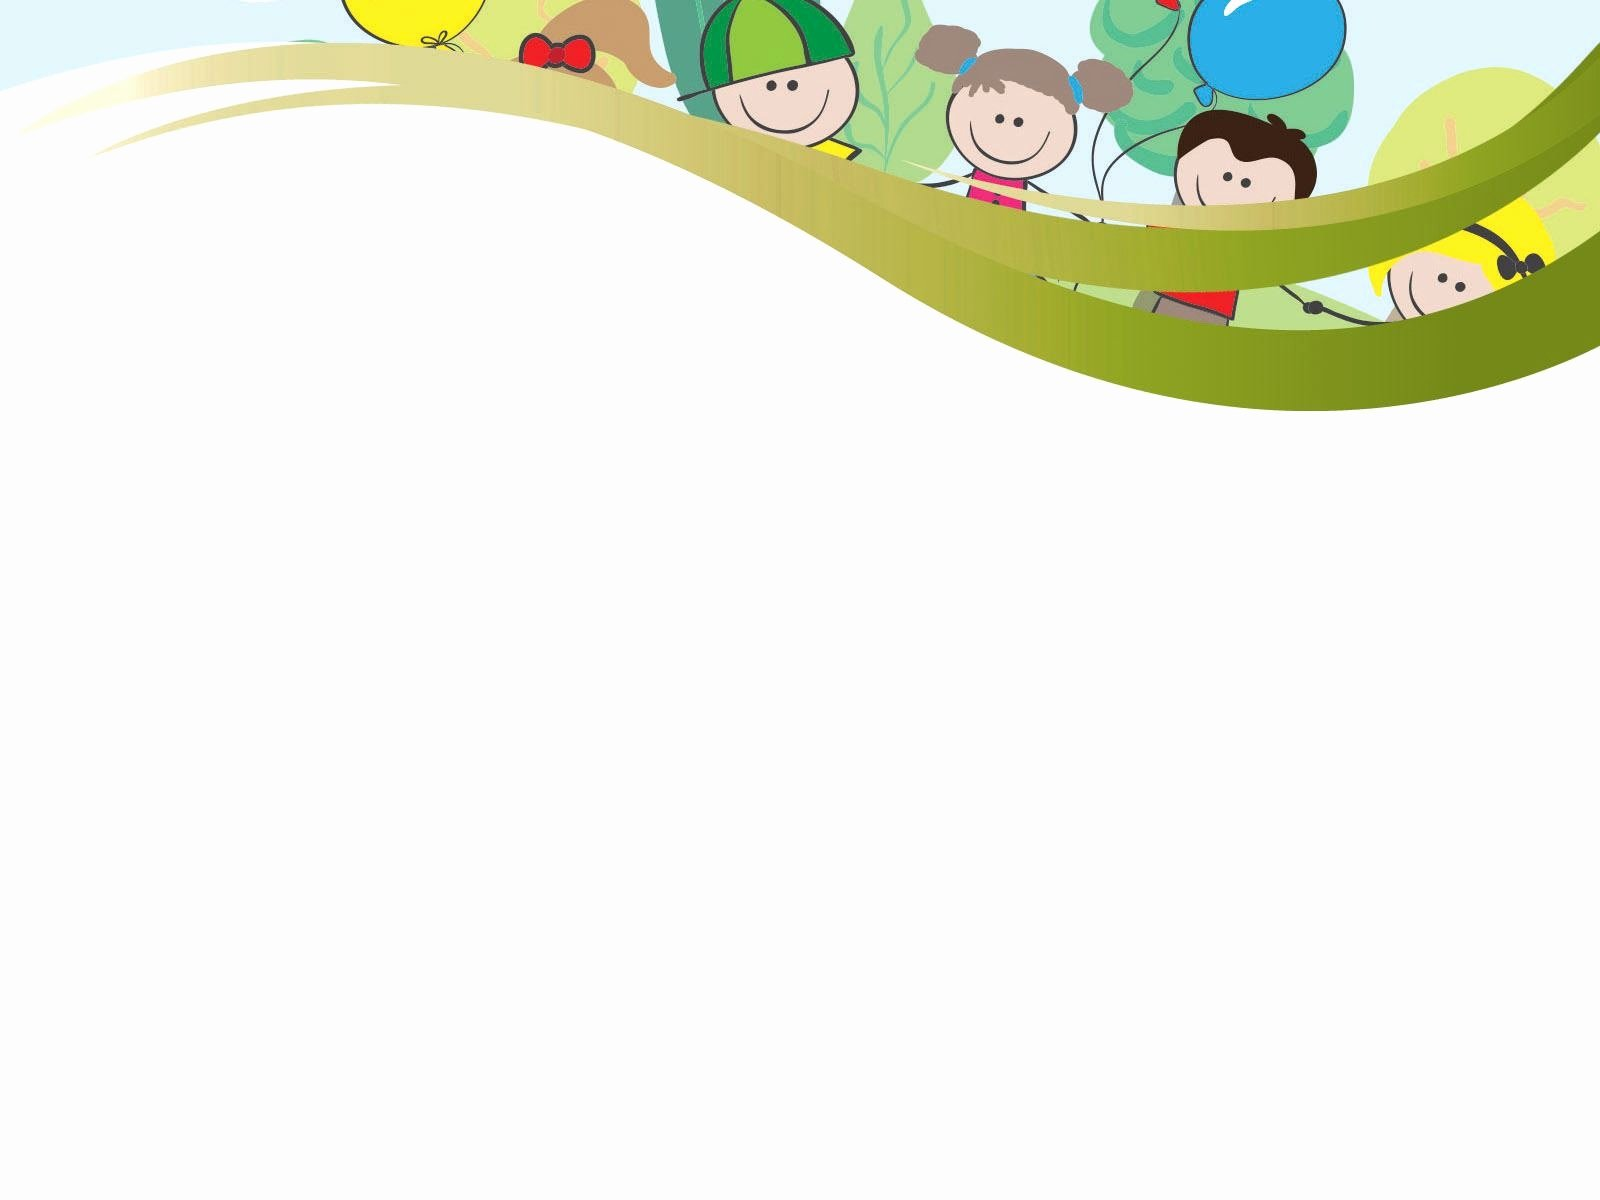 Free Powerpoint Templates for Kids Unique Ppt for Kids